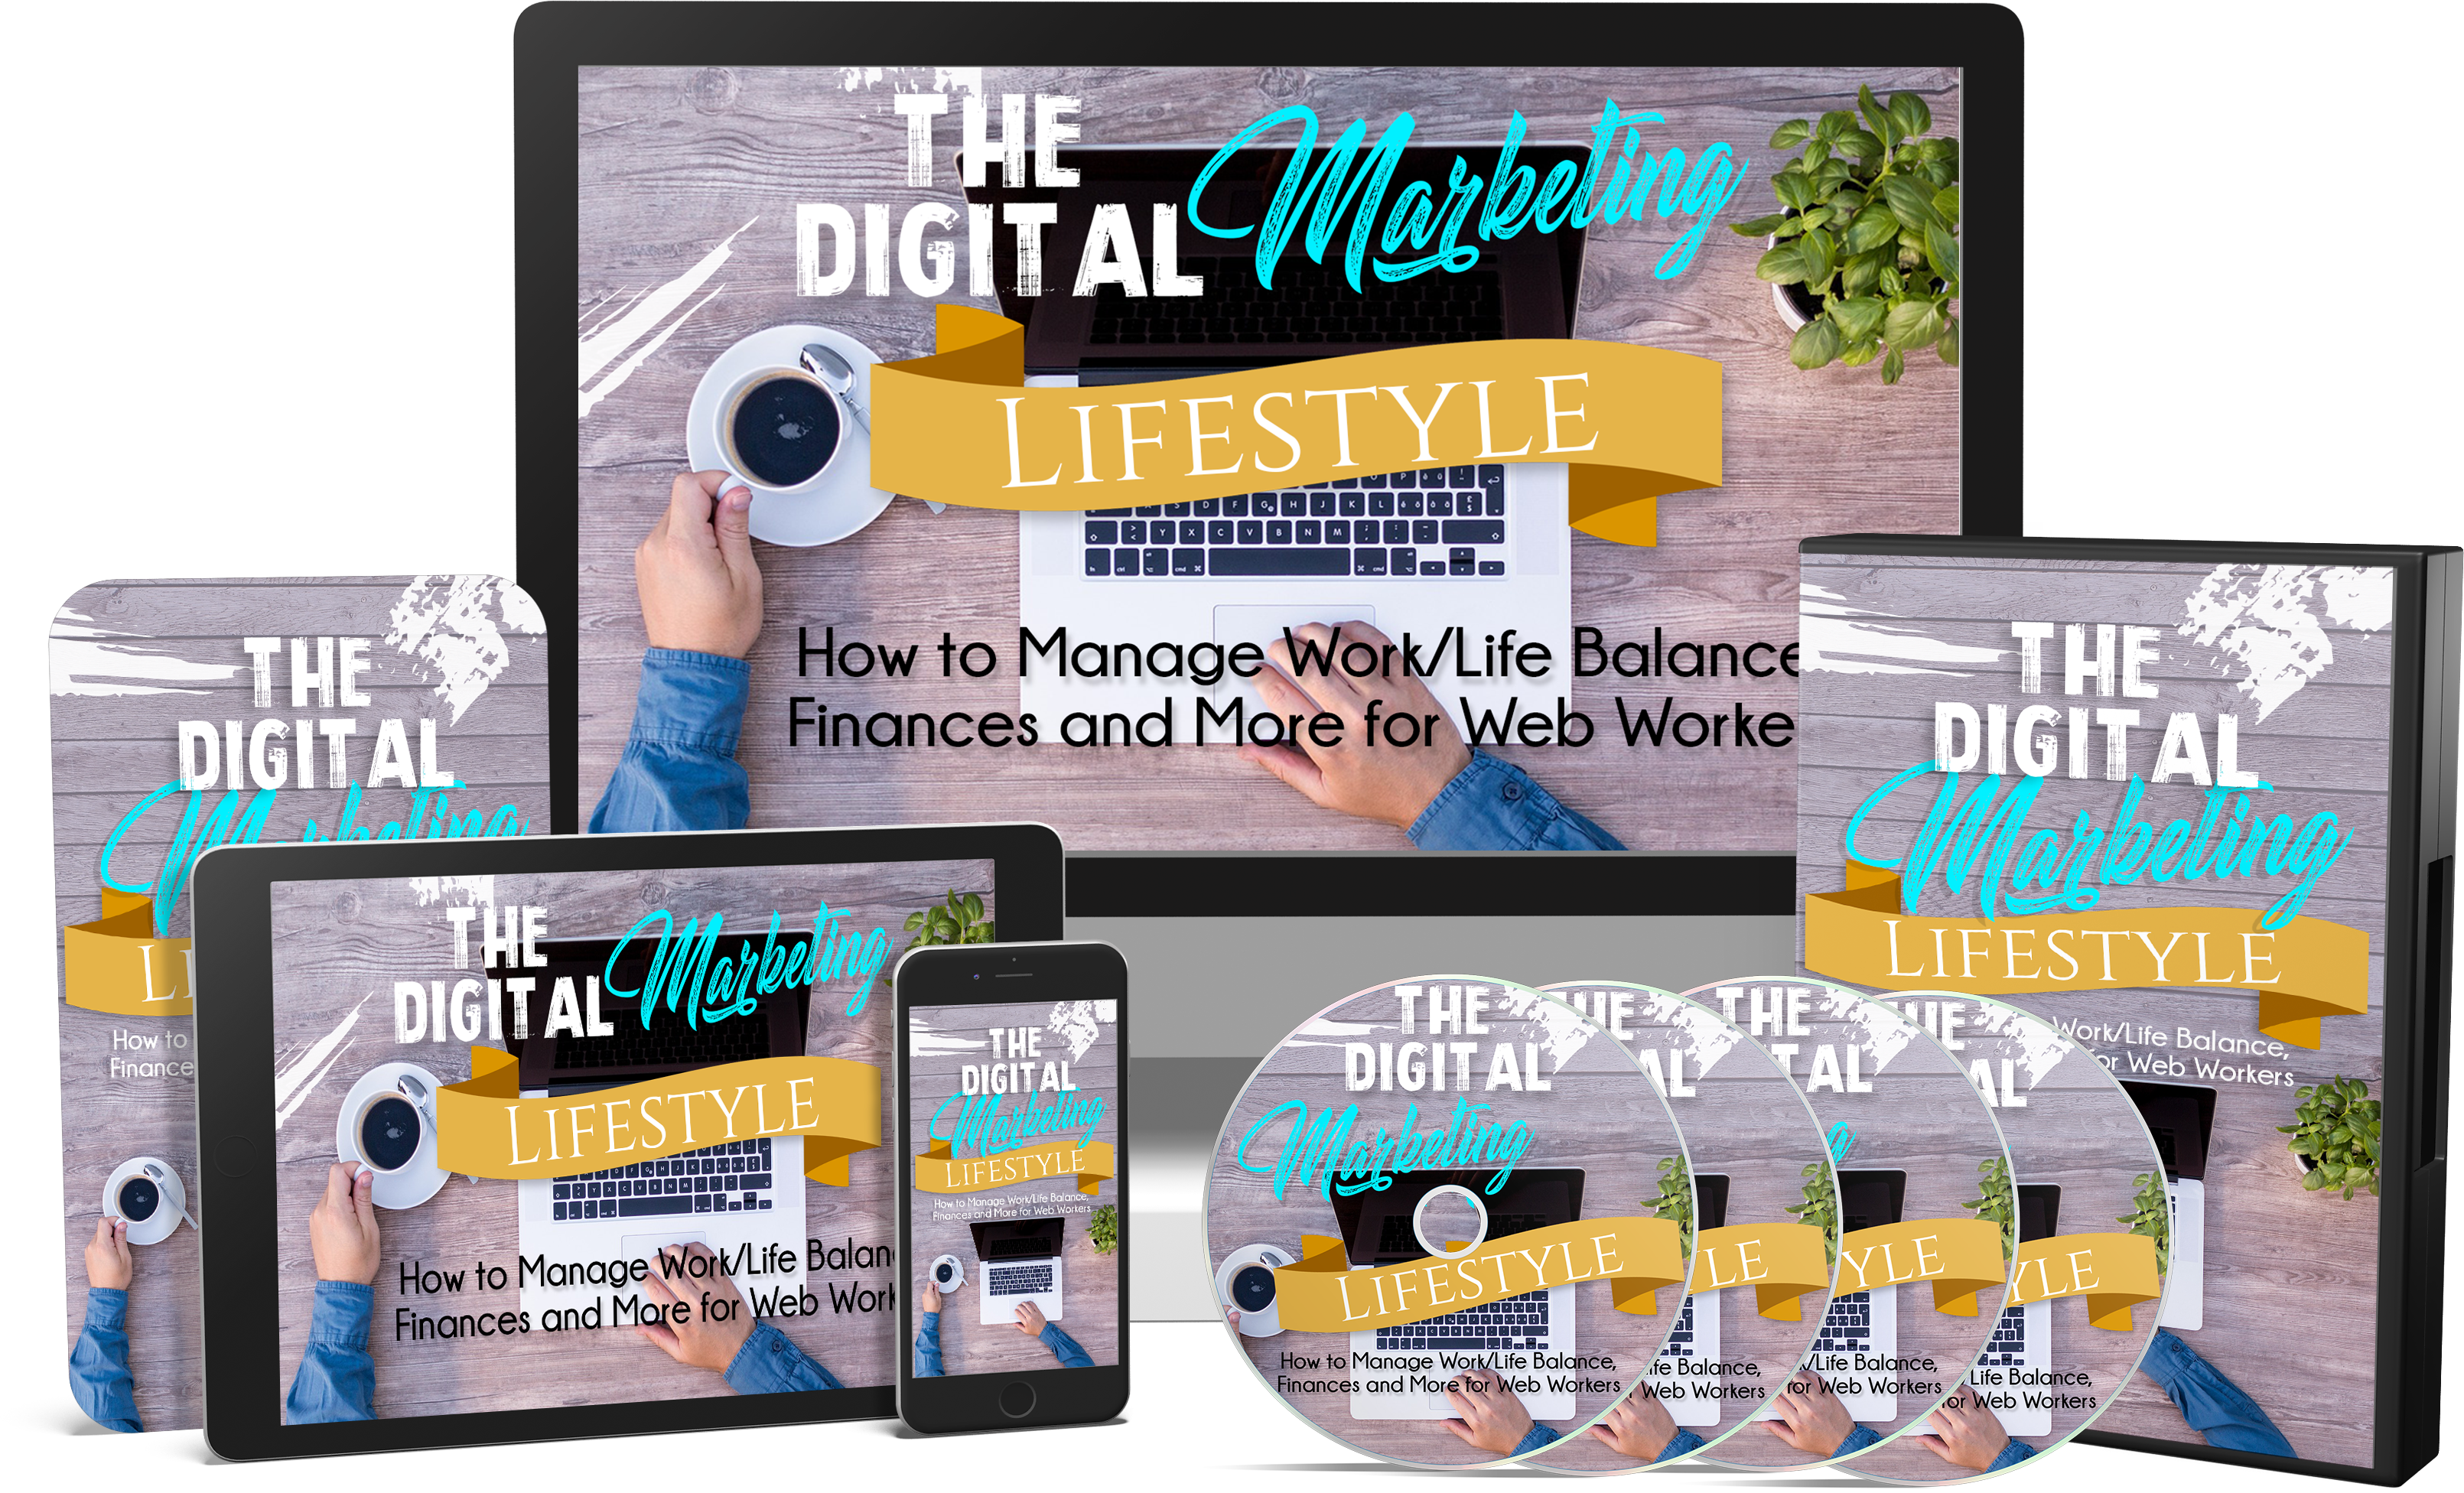 The Digital Marketing Lifestyle Video Course